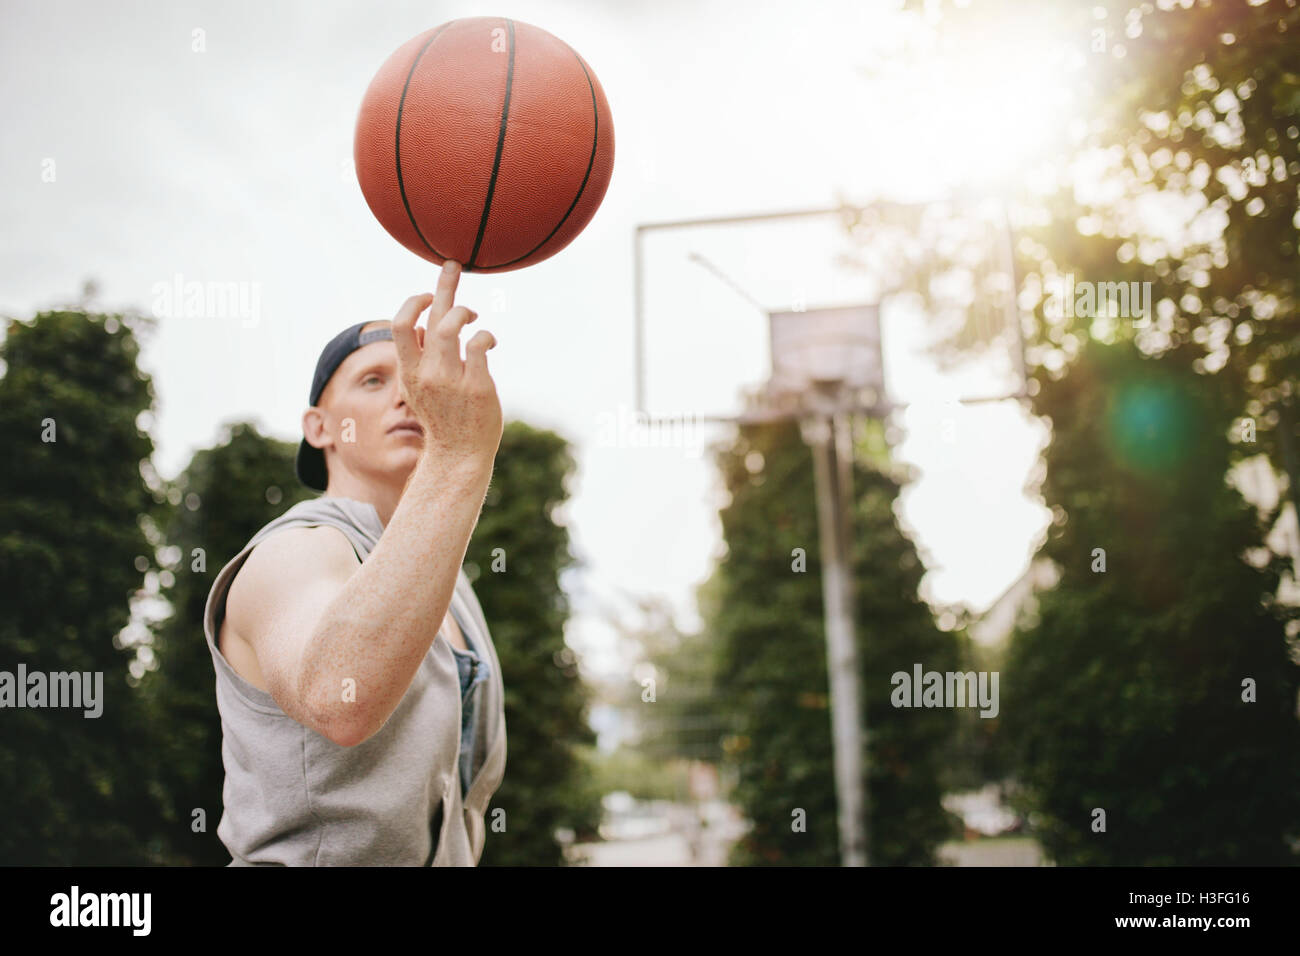 Young man balancing basketball on his finger on outdoor court. Streetball player spinning the ball. Focus on basketball. - Stock Image